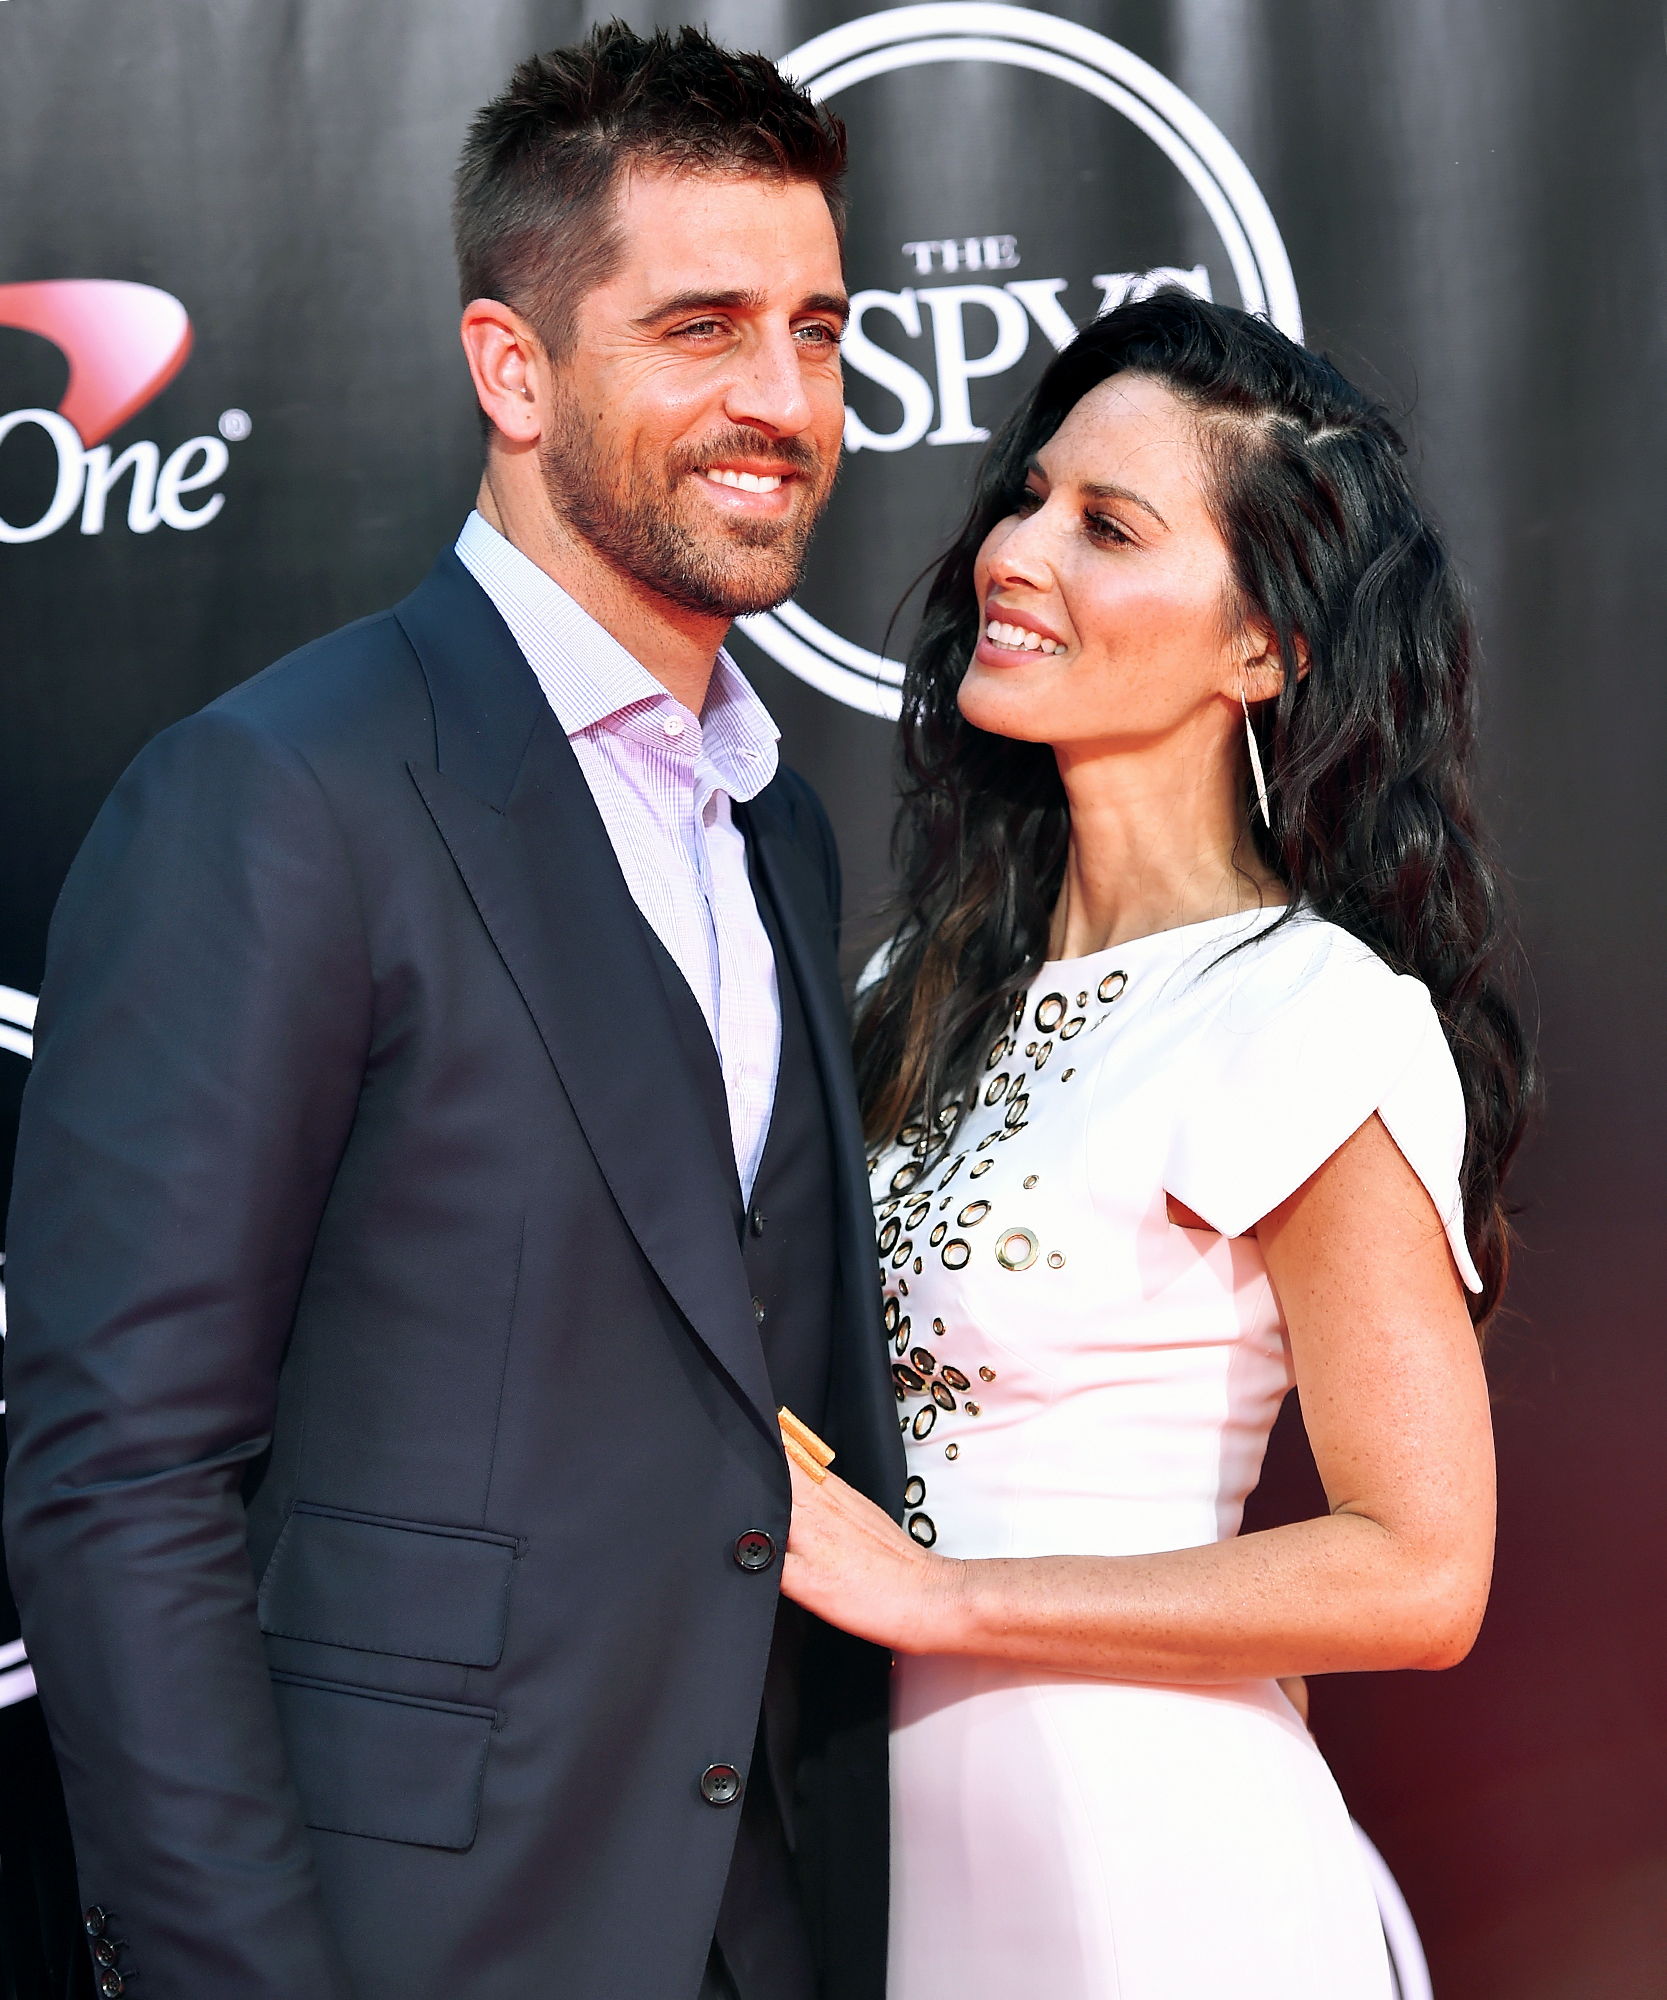 Is Olivia Munn Engaged to Aaron Rodgers? Actress Sports Engagement-Style Ring on Left Hand